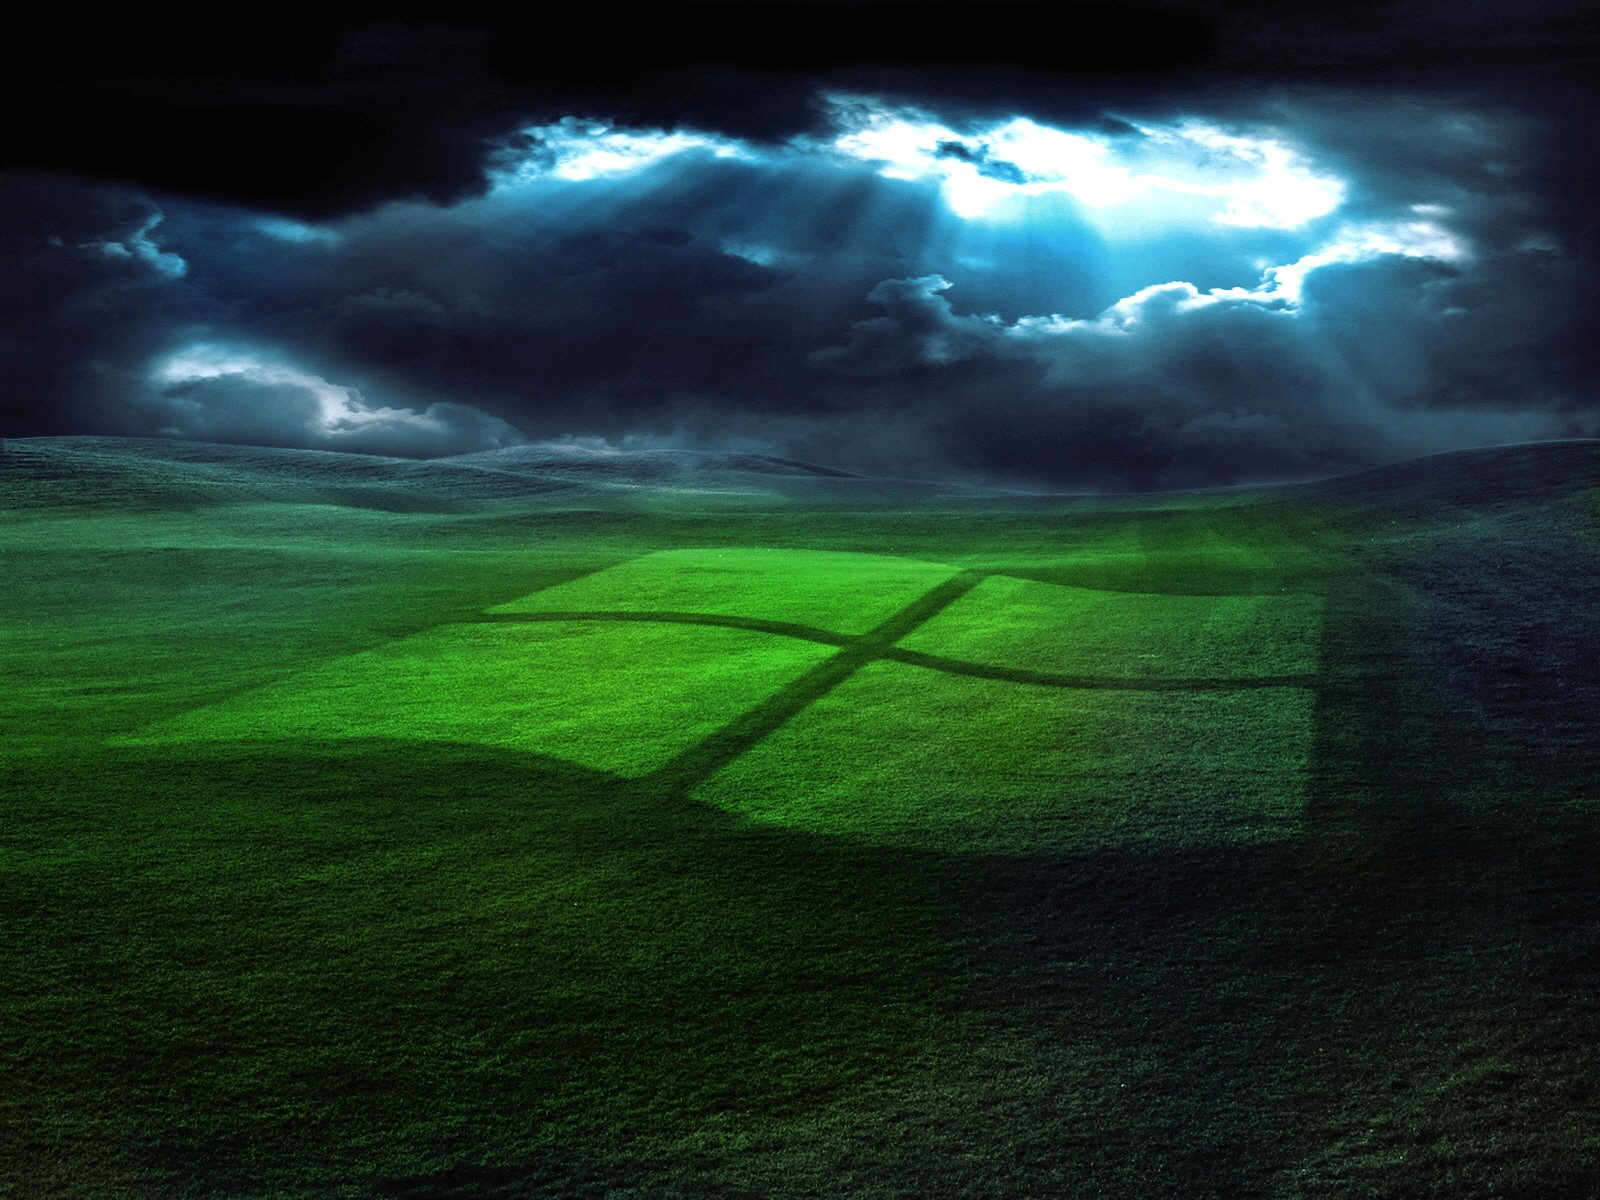 Windows xp wallpaper name